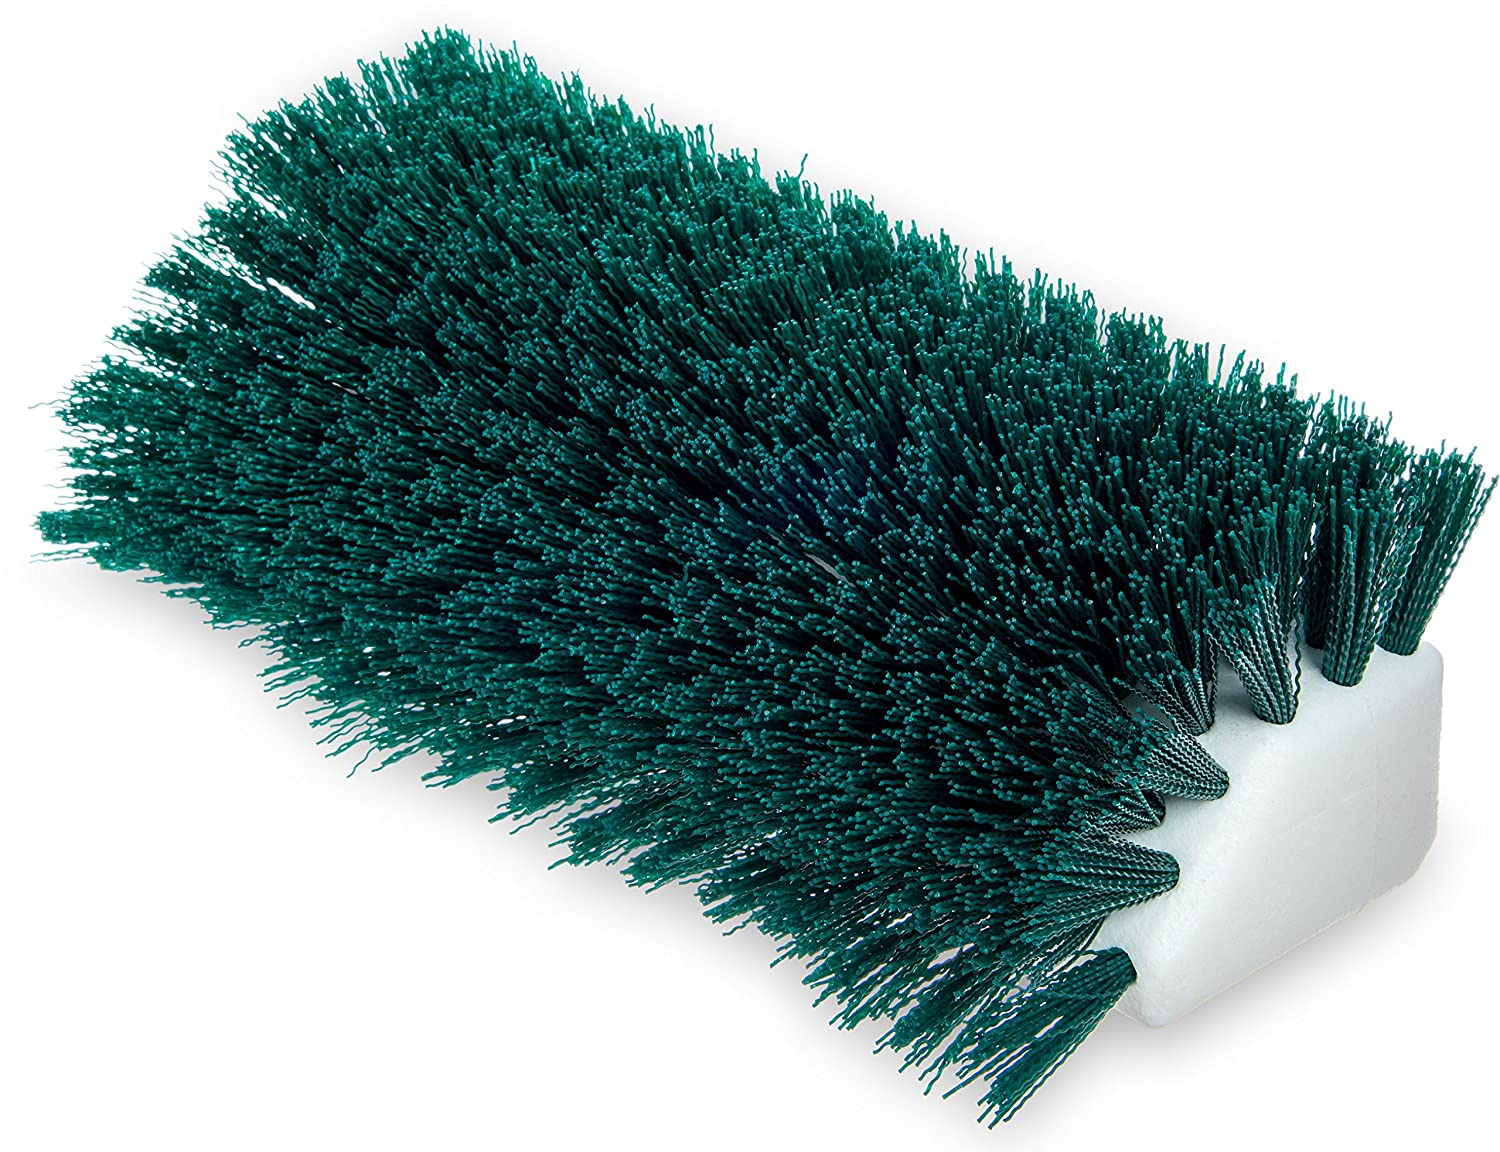 Carlisle 4042303 Hi-Lo Floor Scrub Brush, Black Carlisle Corporation